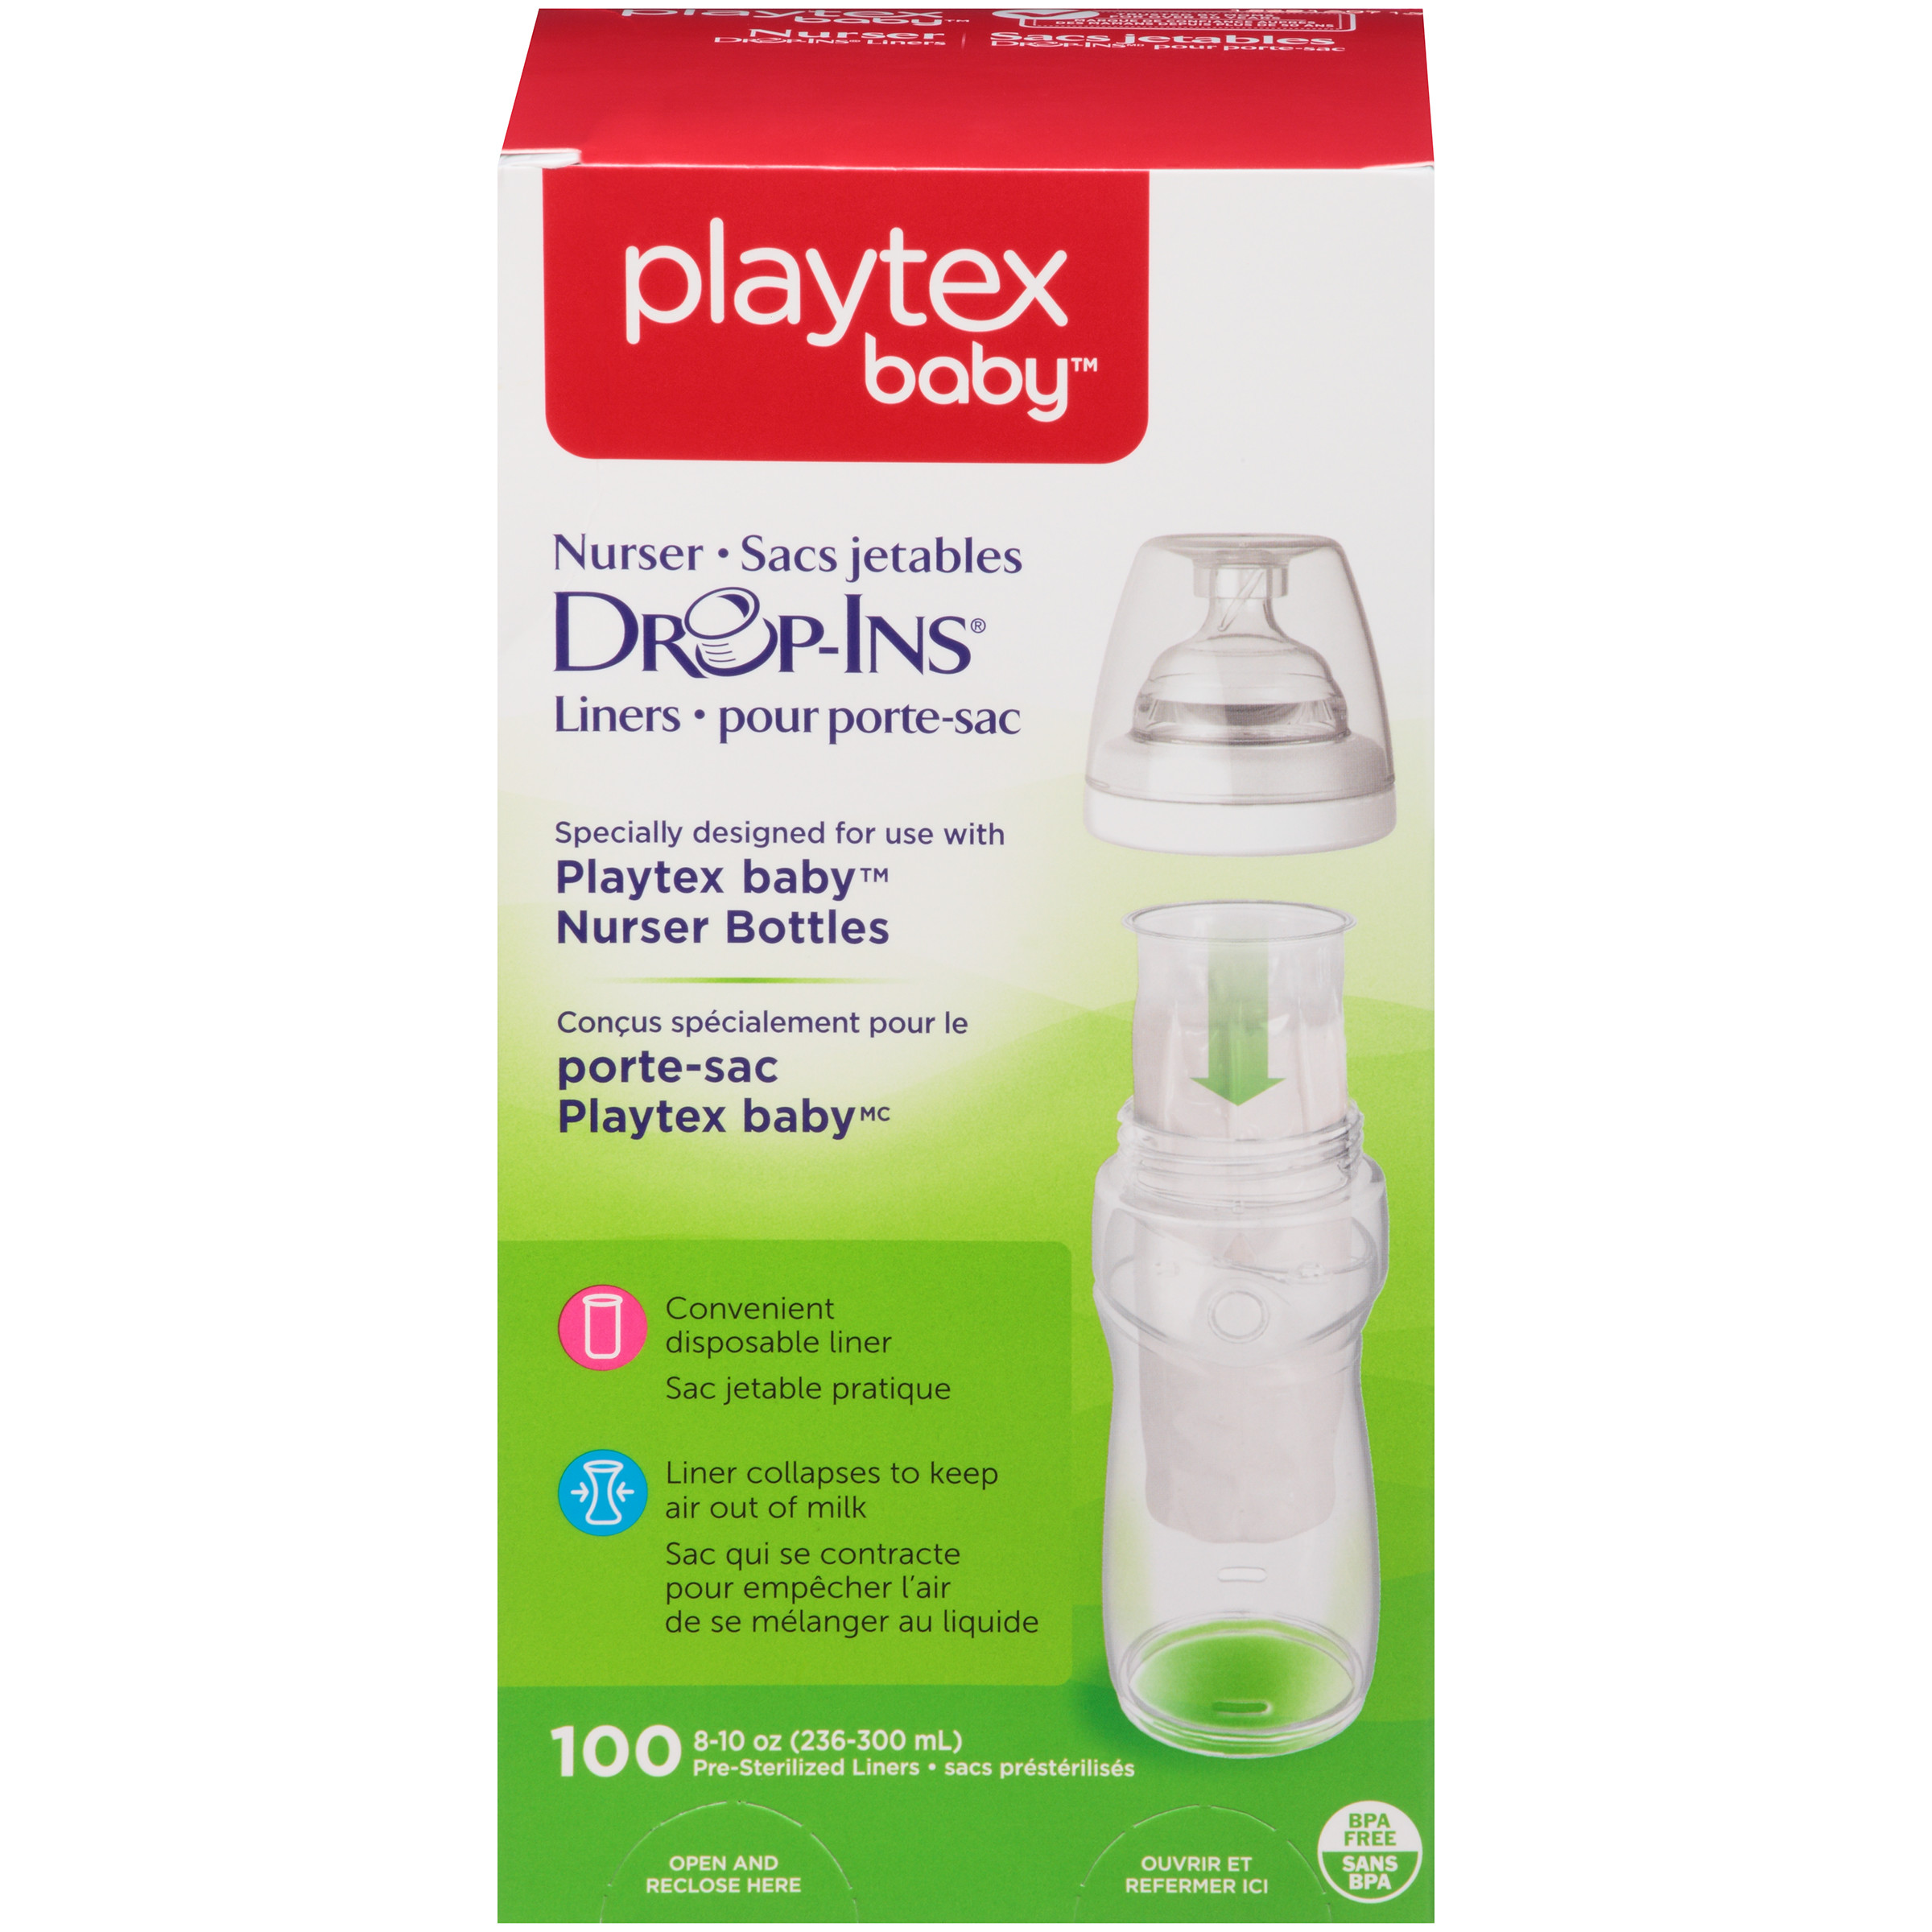 Playtex Baby Drop-Ins Liners For Playtex Baby Nurser Bottles 8-10oz 100 count